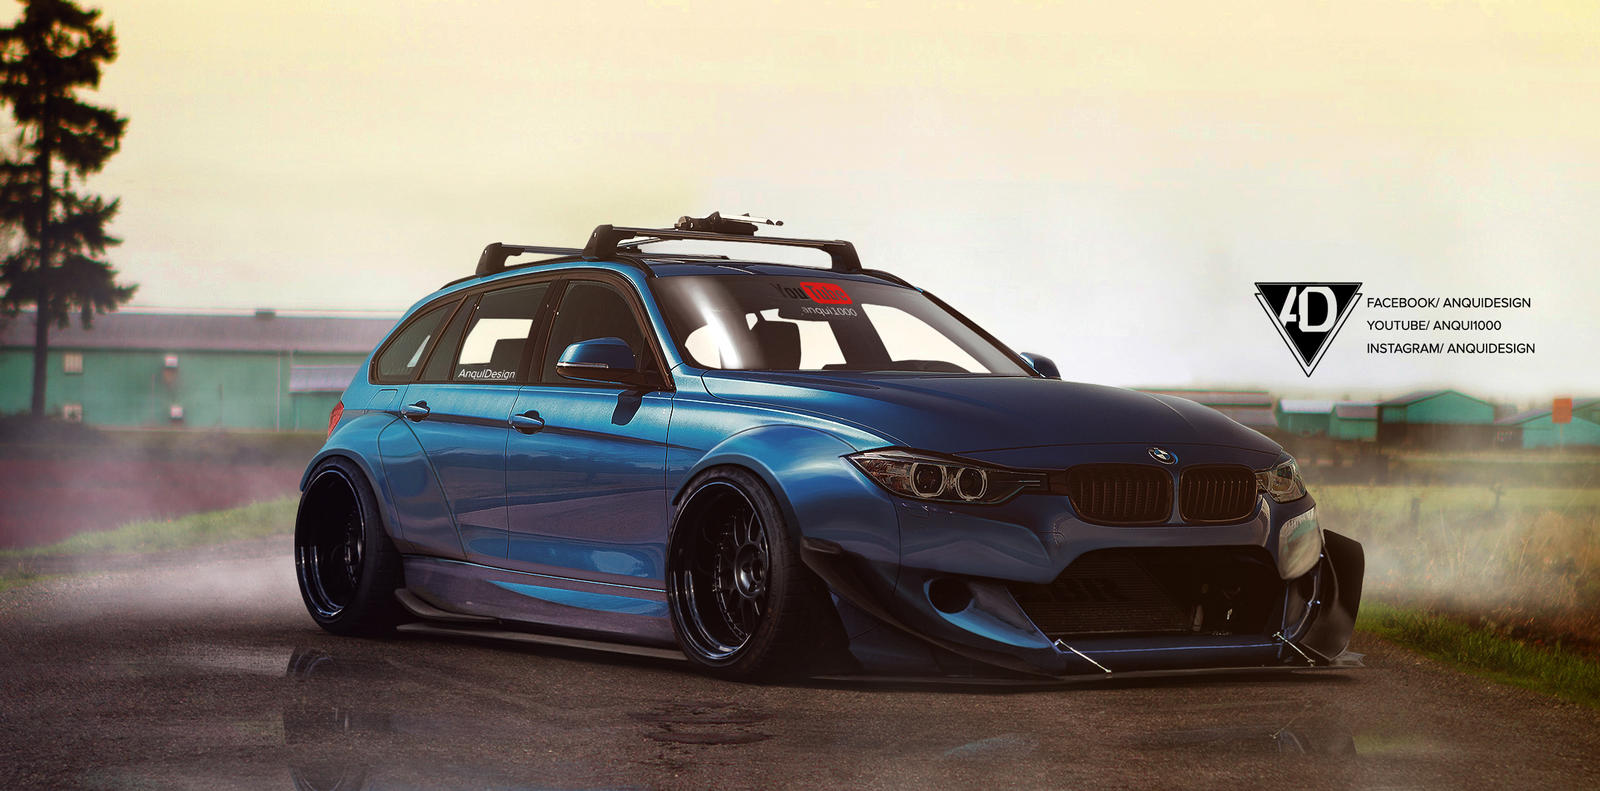 Bmw F80 Rocket Bunny By Anqui On Deviantart